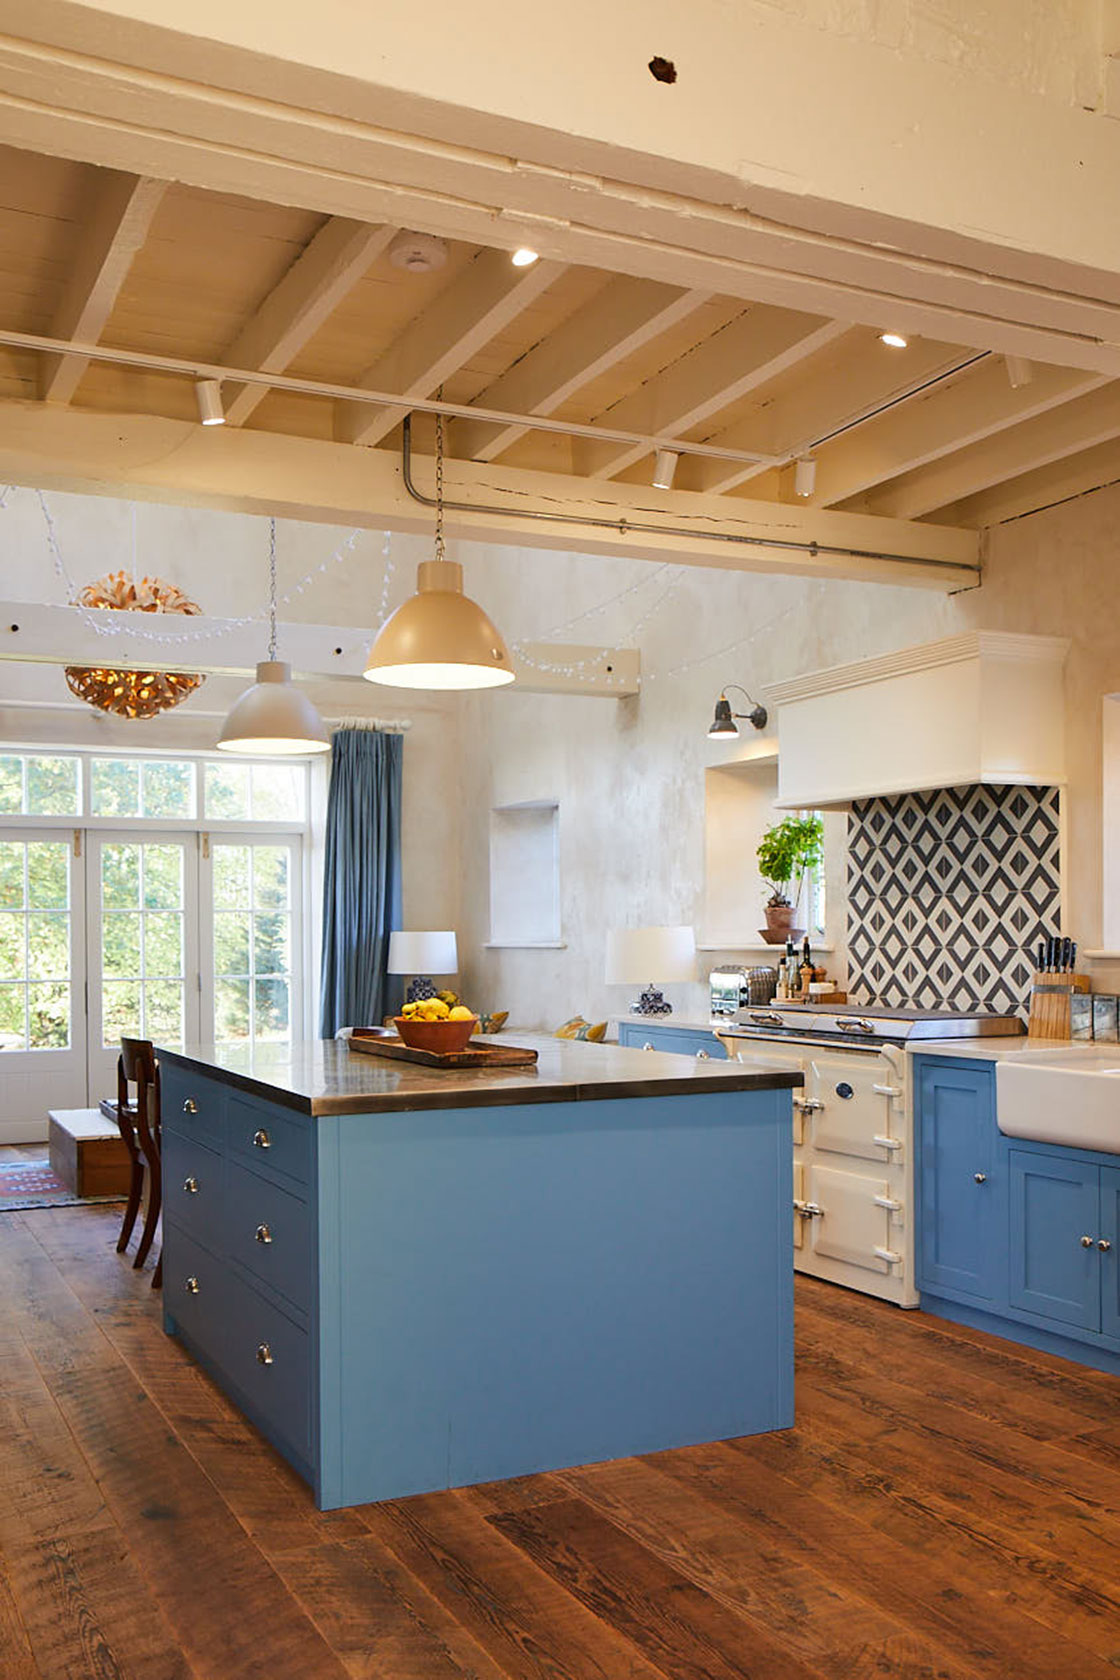 Light blue kitchen island in open plan room with reclaimed pinewood floors